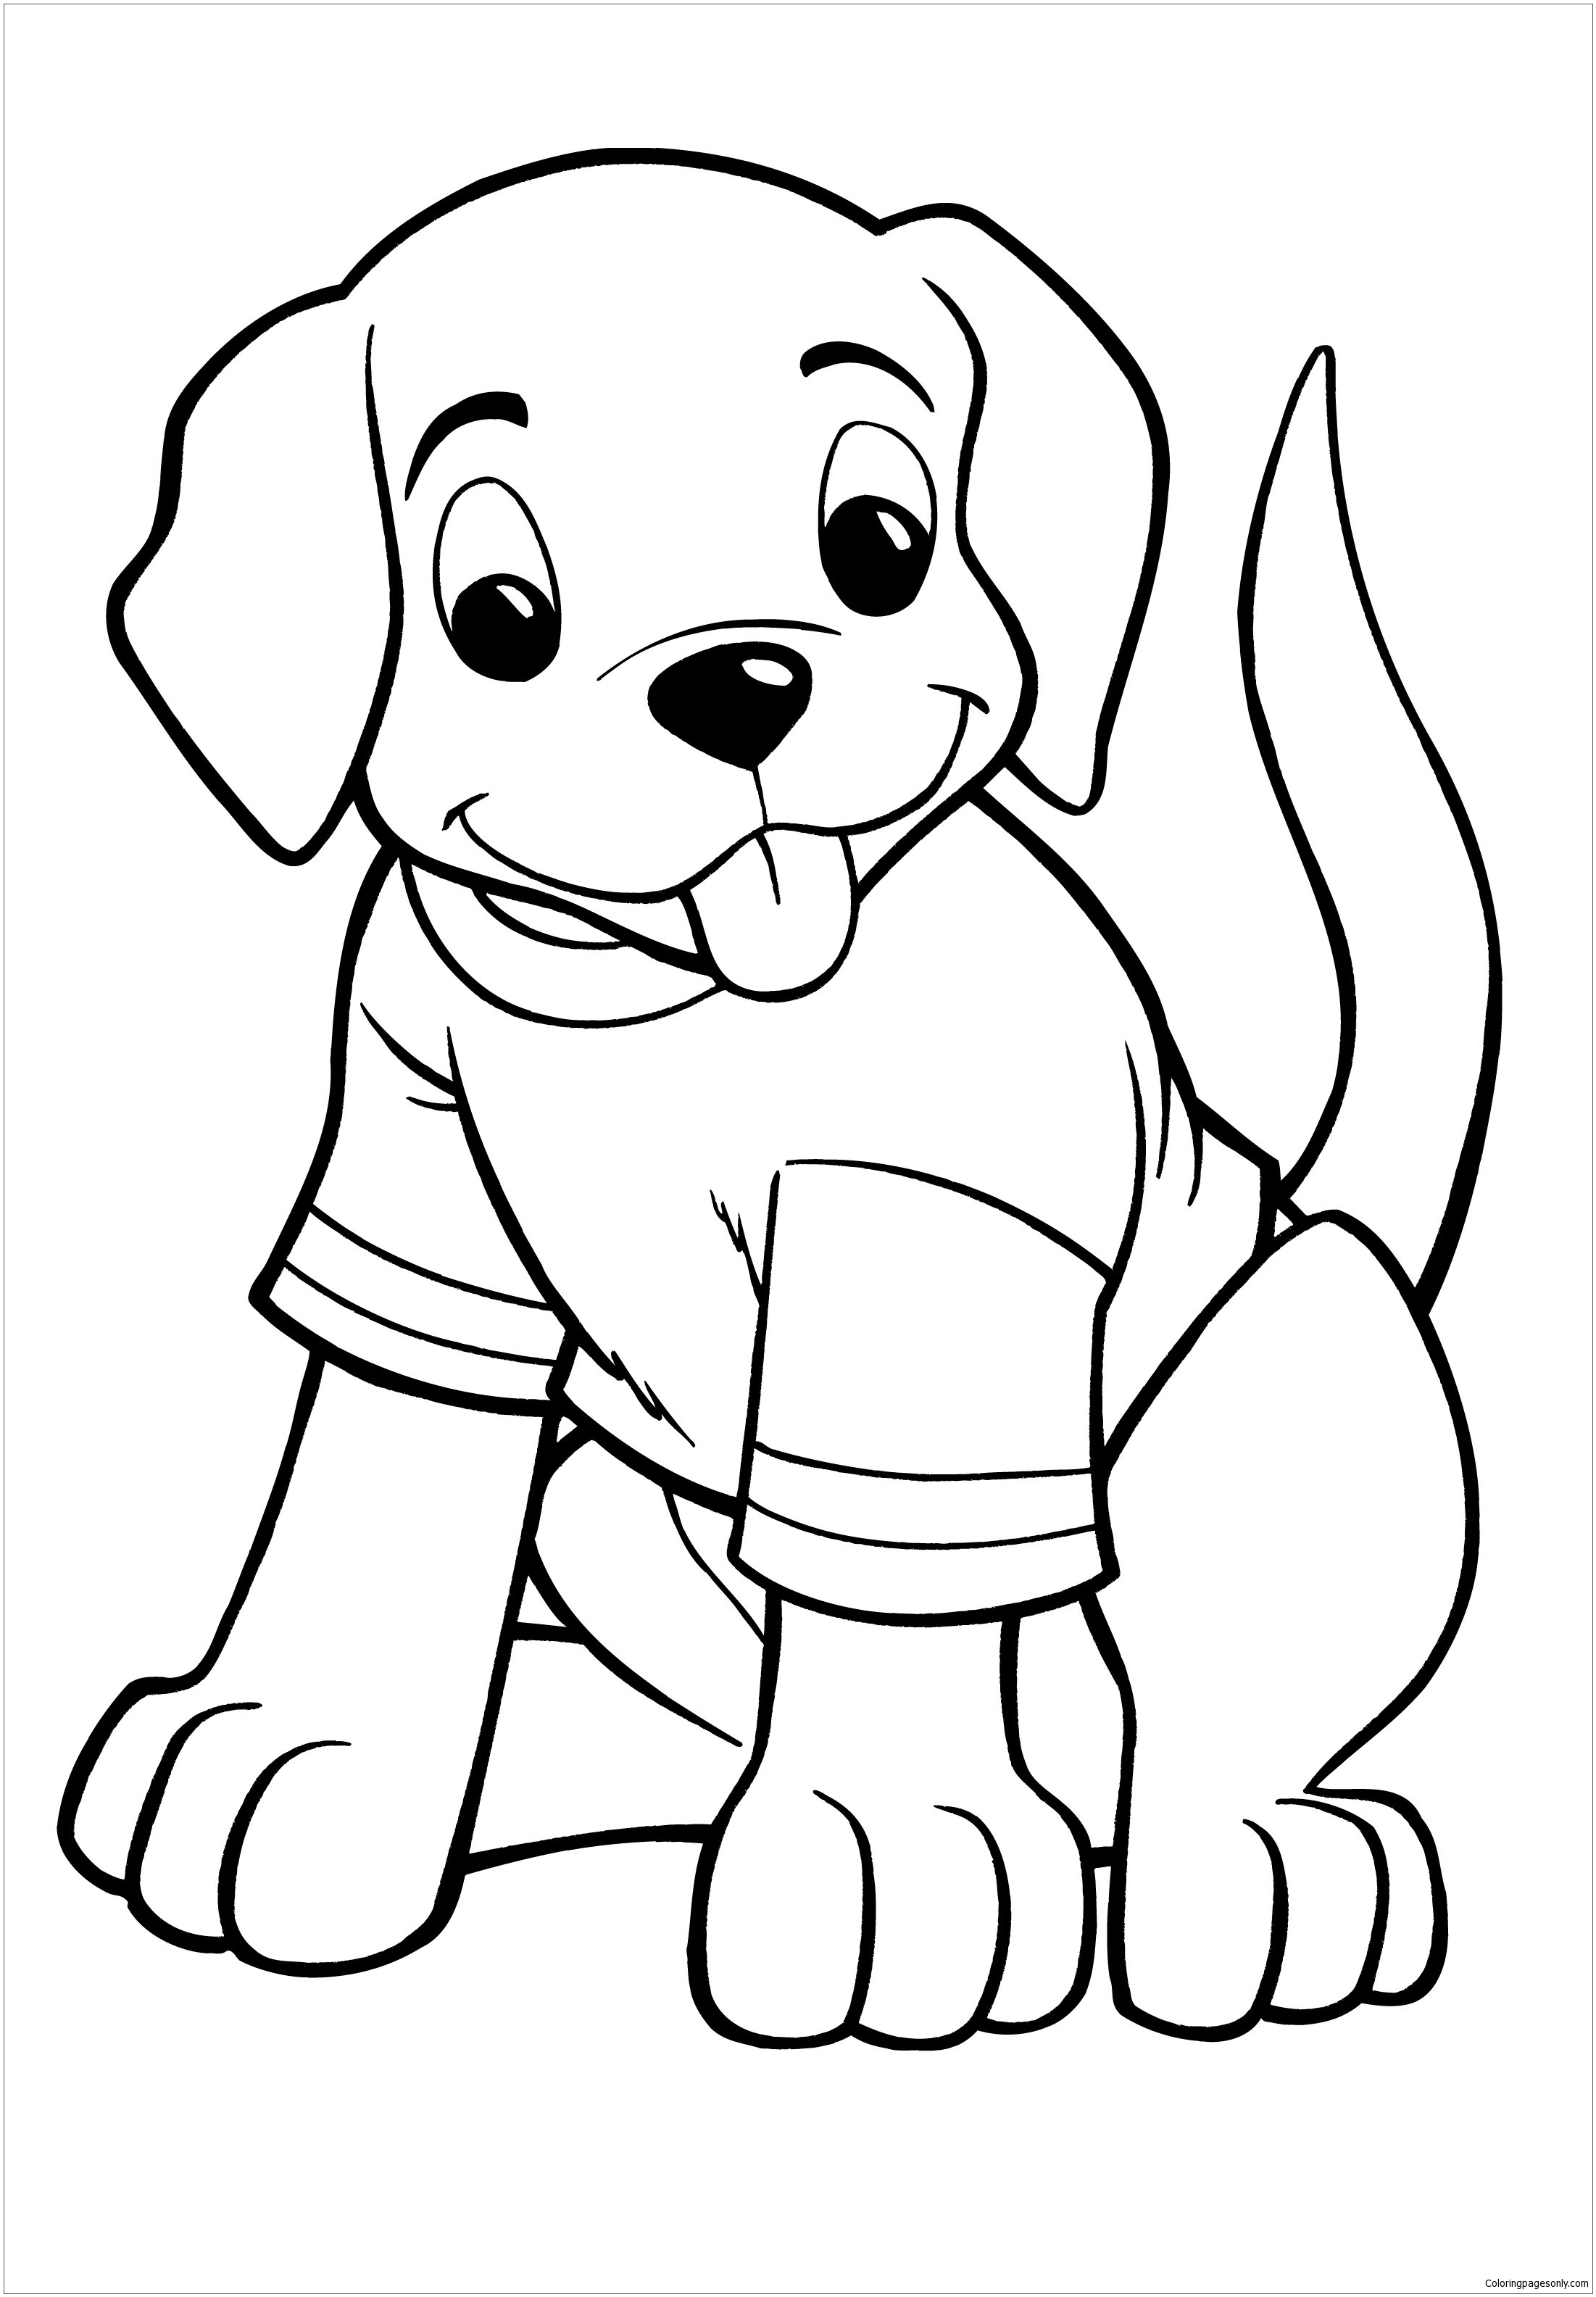 coloring page of a dog puppy coloring pages best coloring pages for kids of a dog coloring page